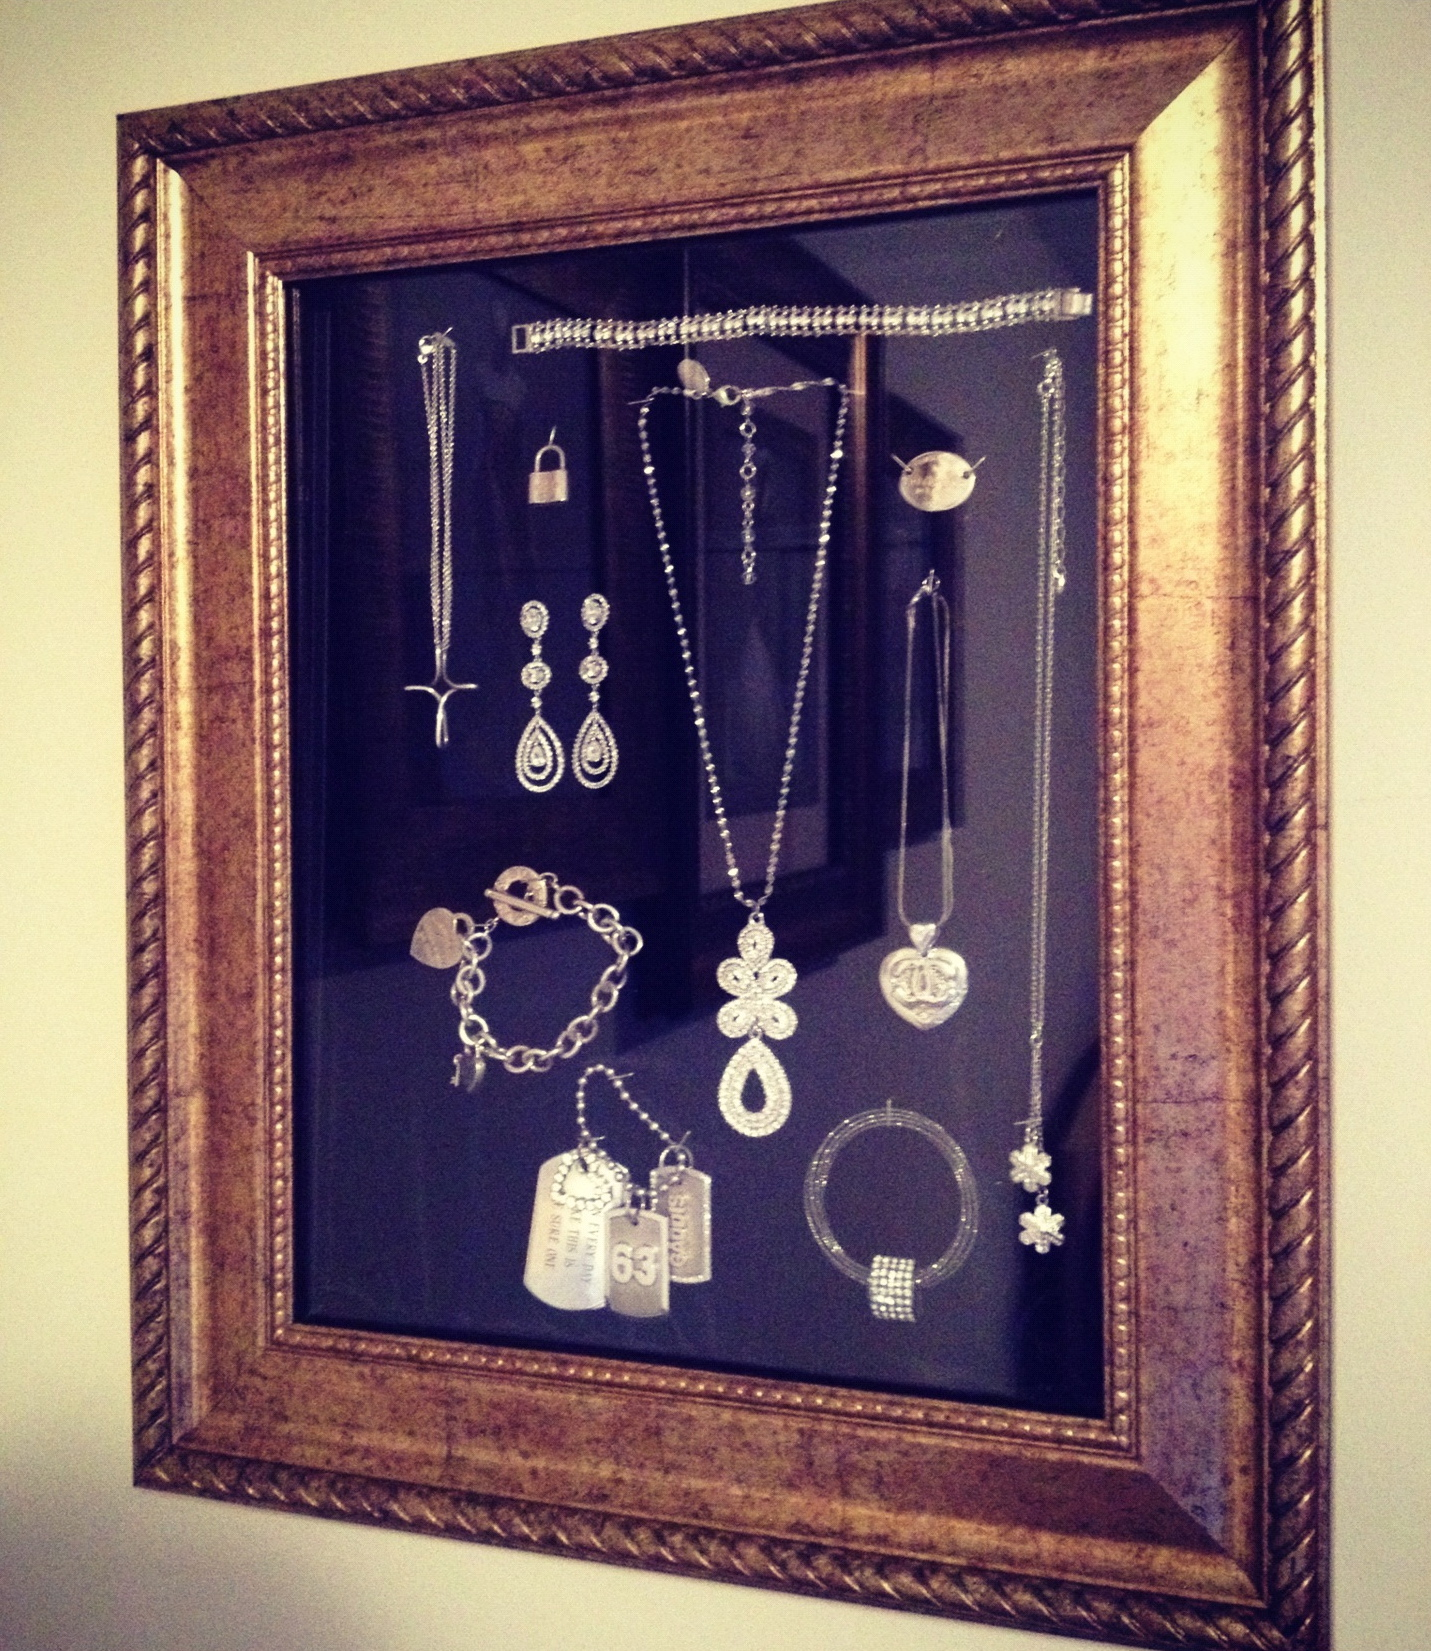 Framed Jewelry Box